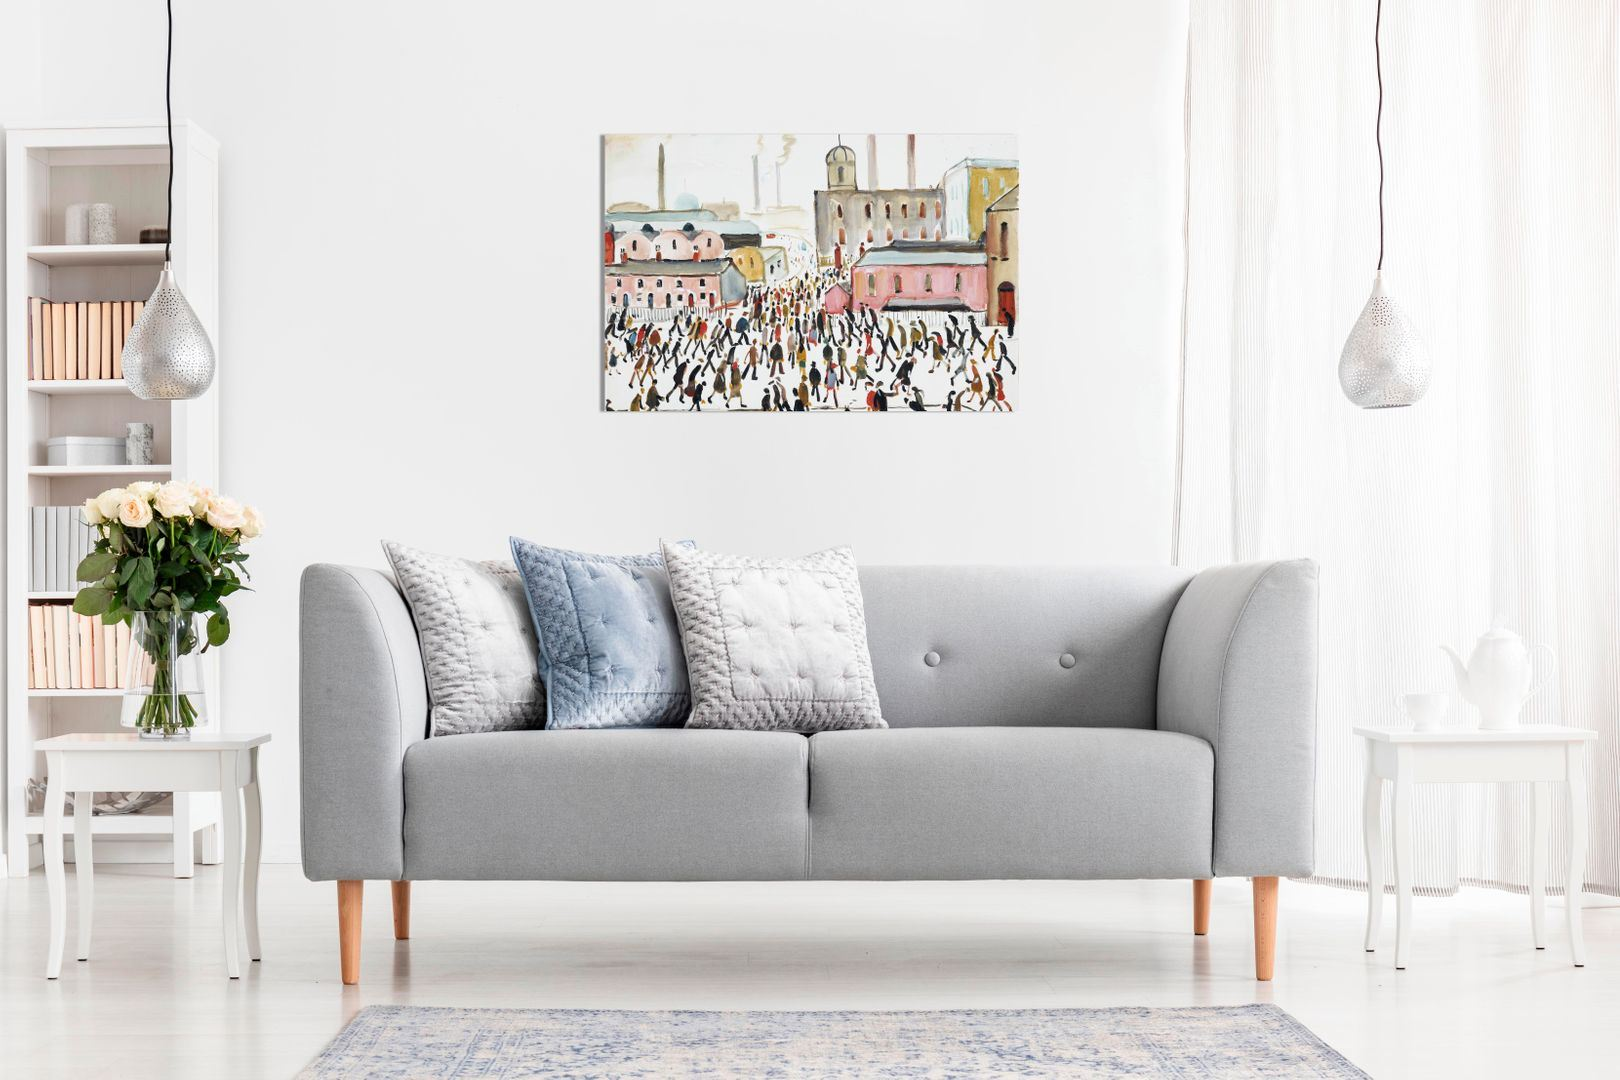 L-S-Lowry-Collection-Painting-Canvas-Print-Wall-Art-Picture-Home-Decor miniatura 5